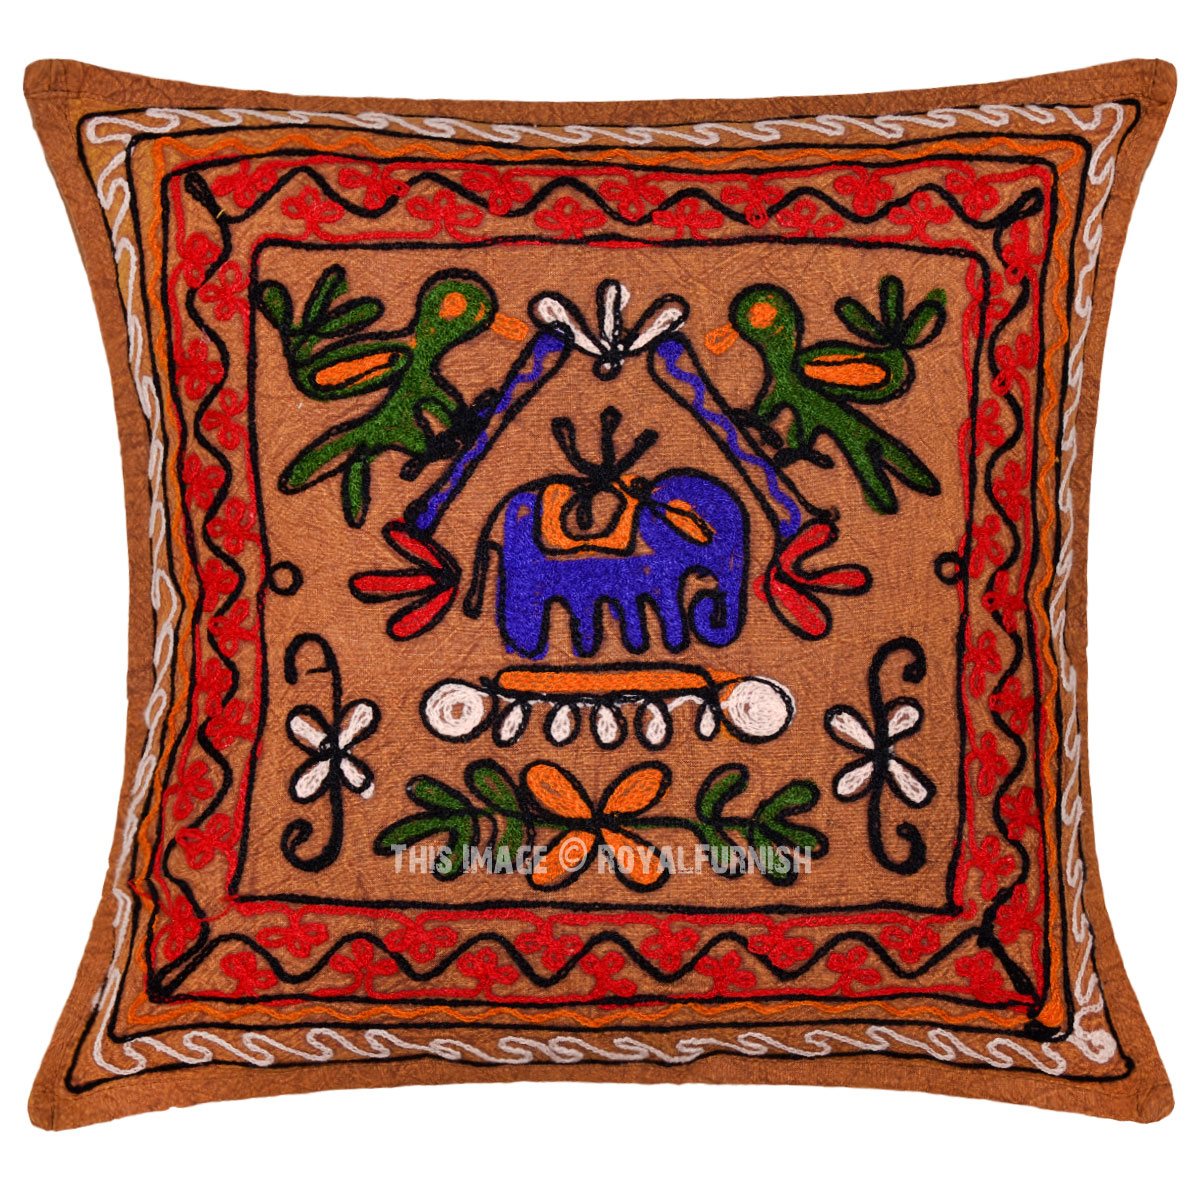 Vintage Indian Embroidered Animal Design Decorative Throw Pillow Case - RoyalFurnish.com